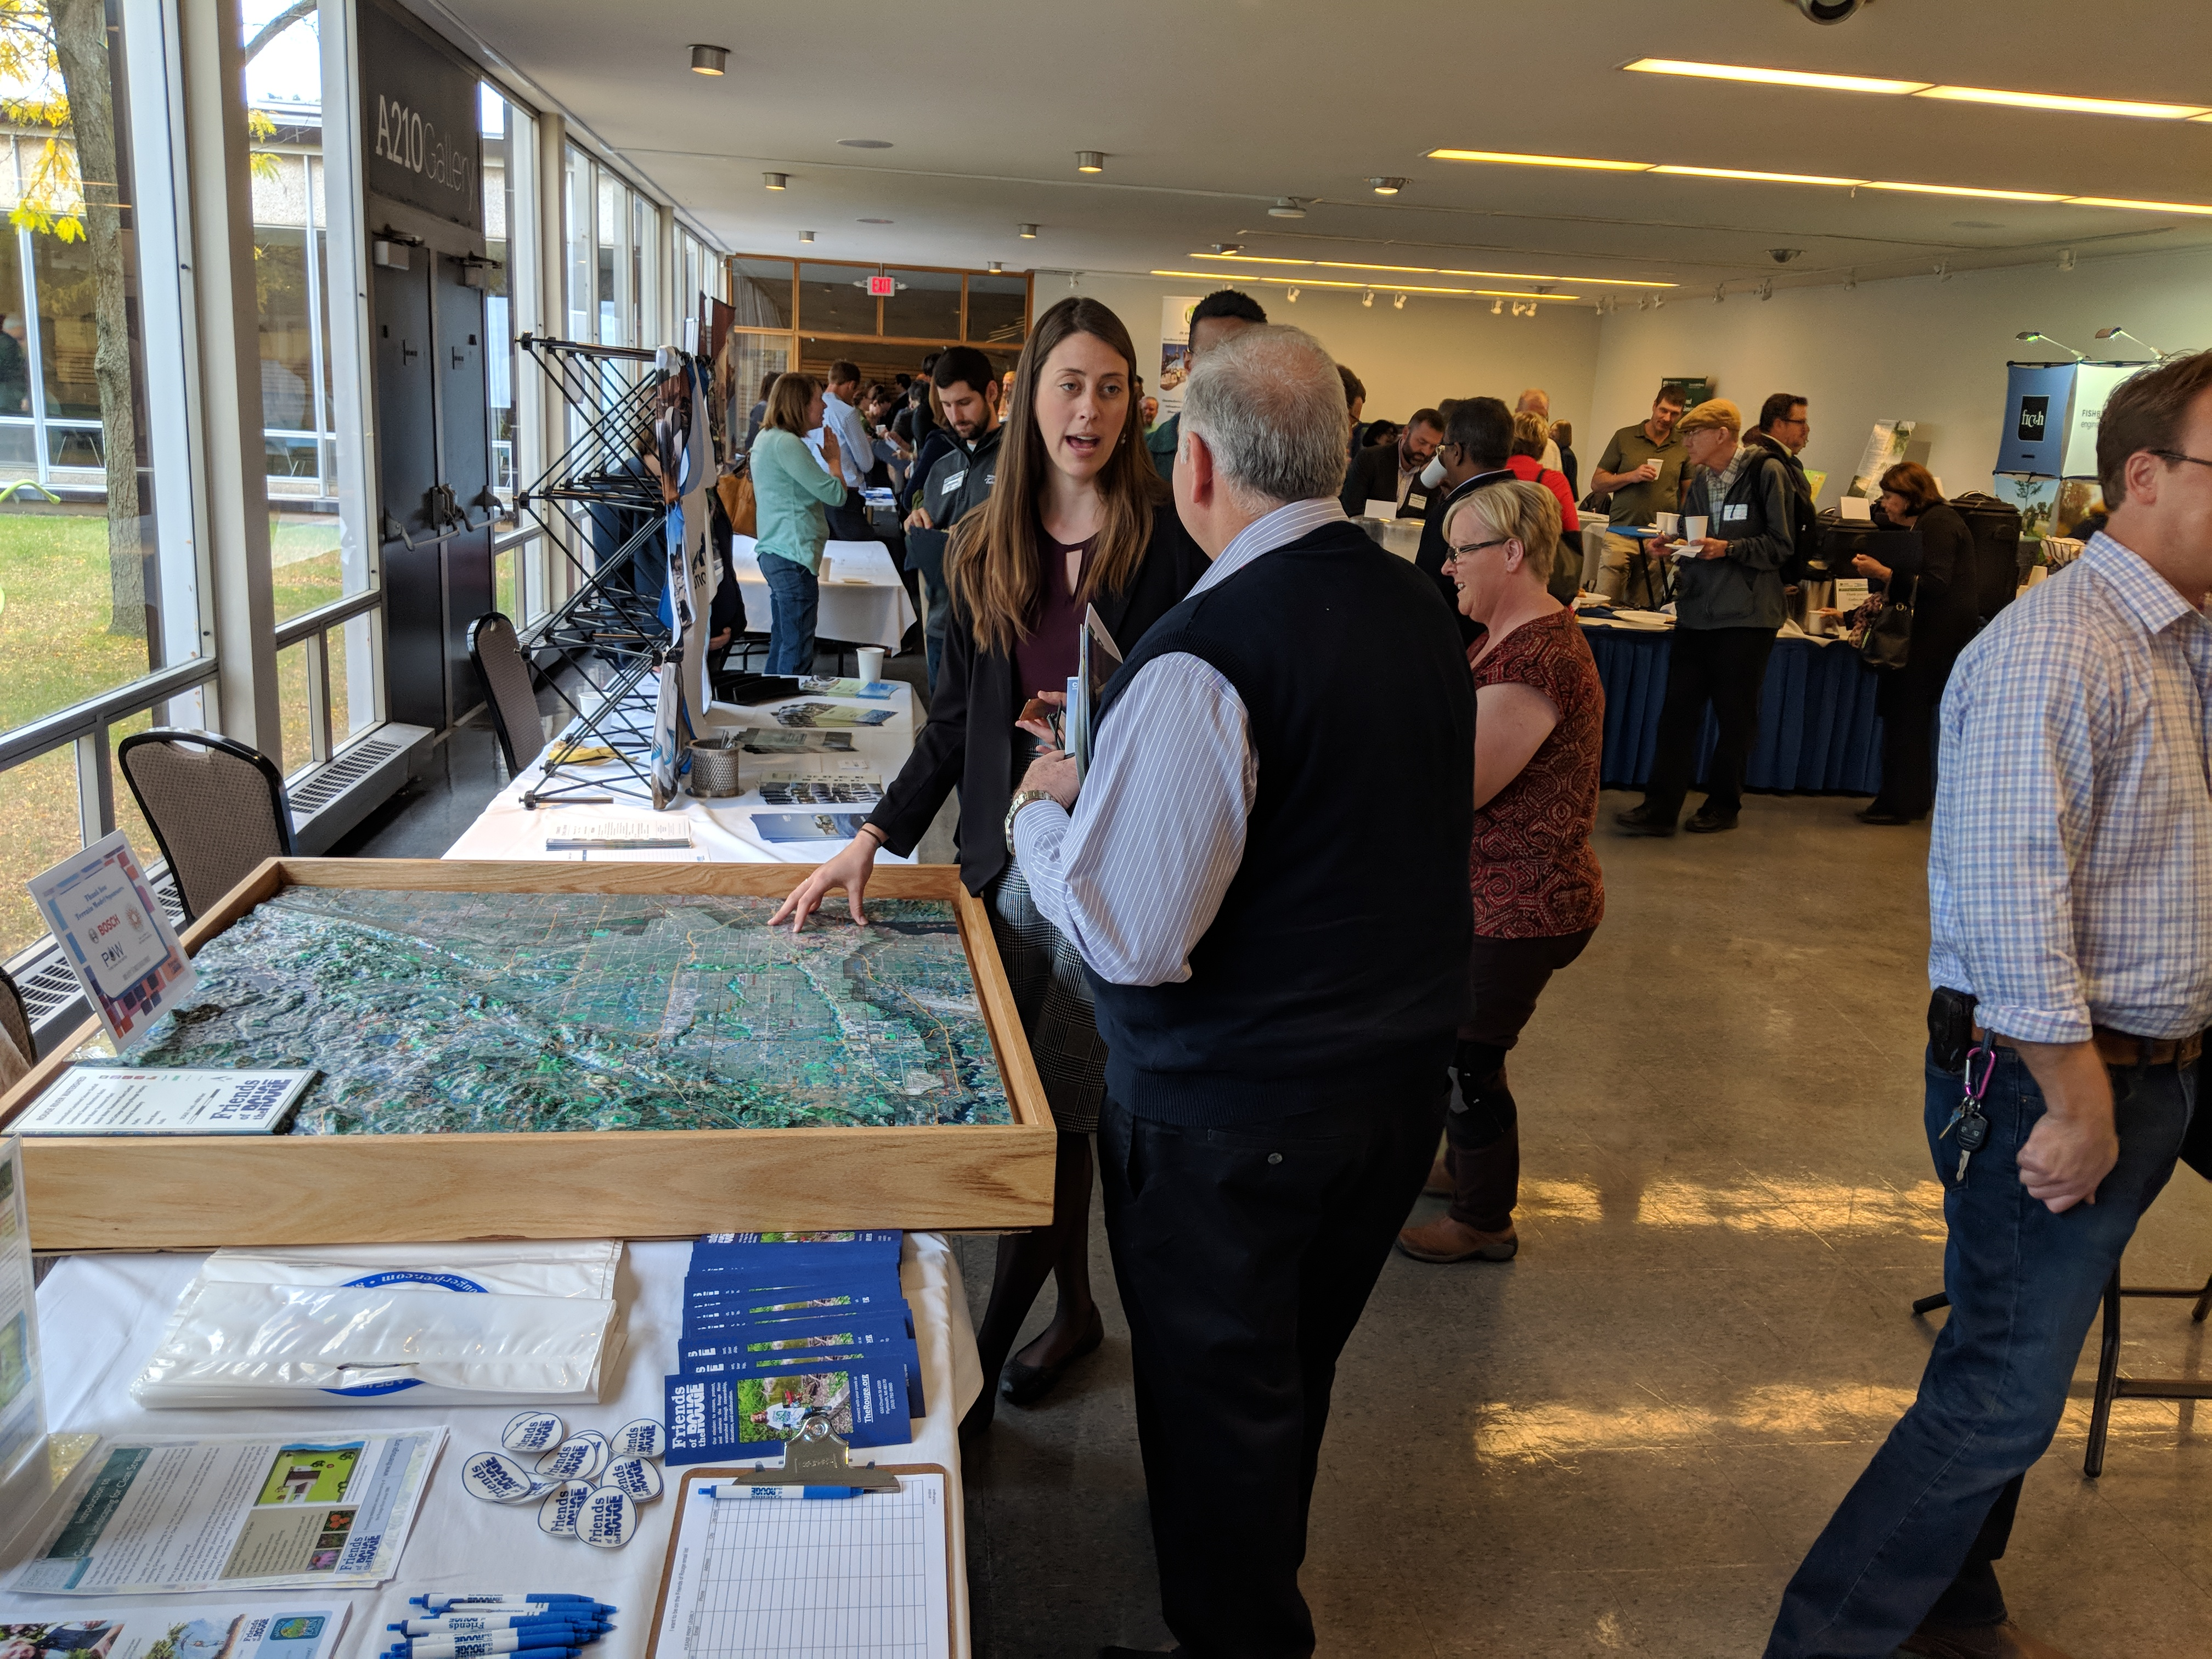 6th Annual Regional Stormwater Summit